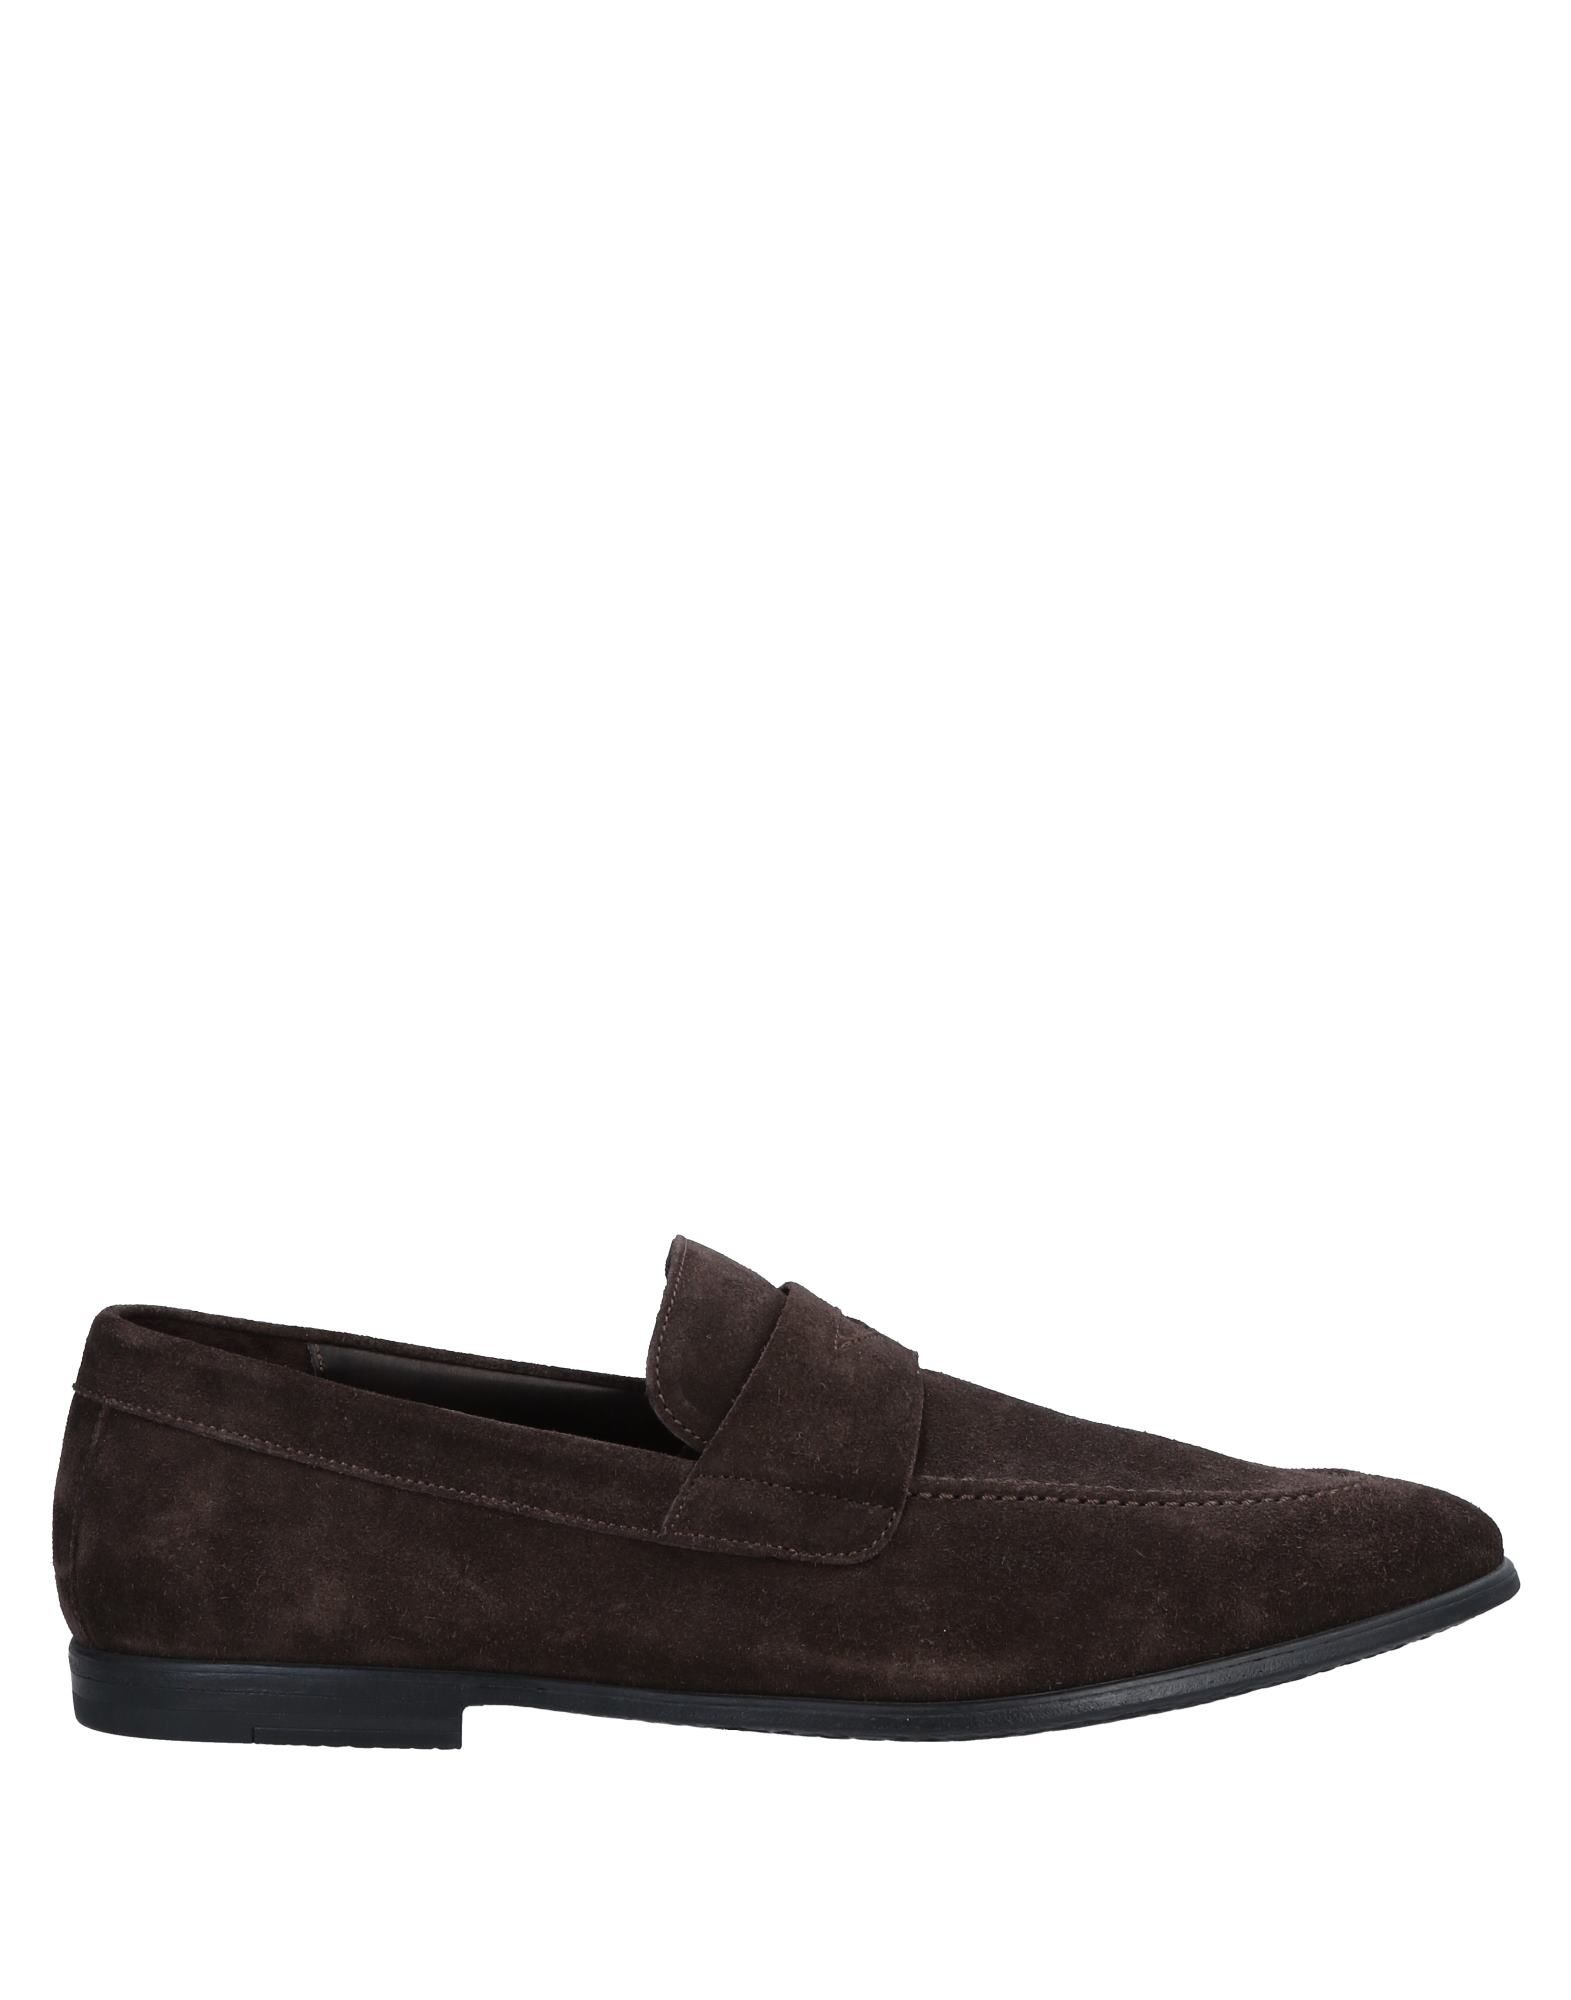 Ortigni on Loafers - Men Ortigni Loafers online on Ortigni  Canada - 11566466OB 639a09